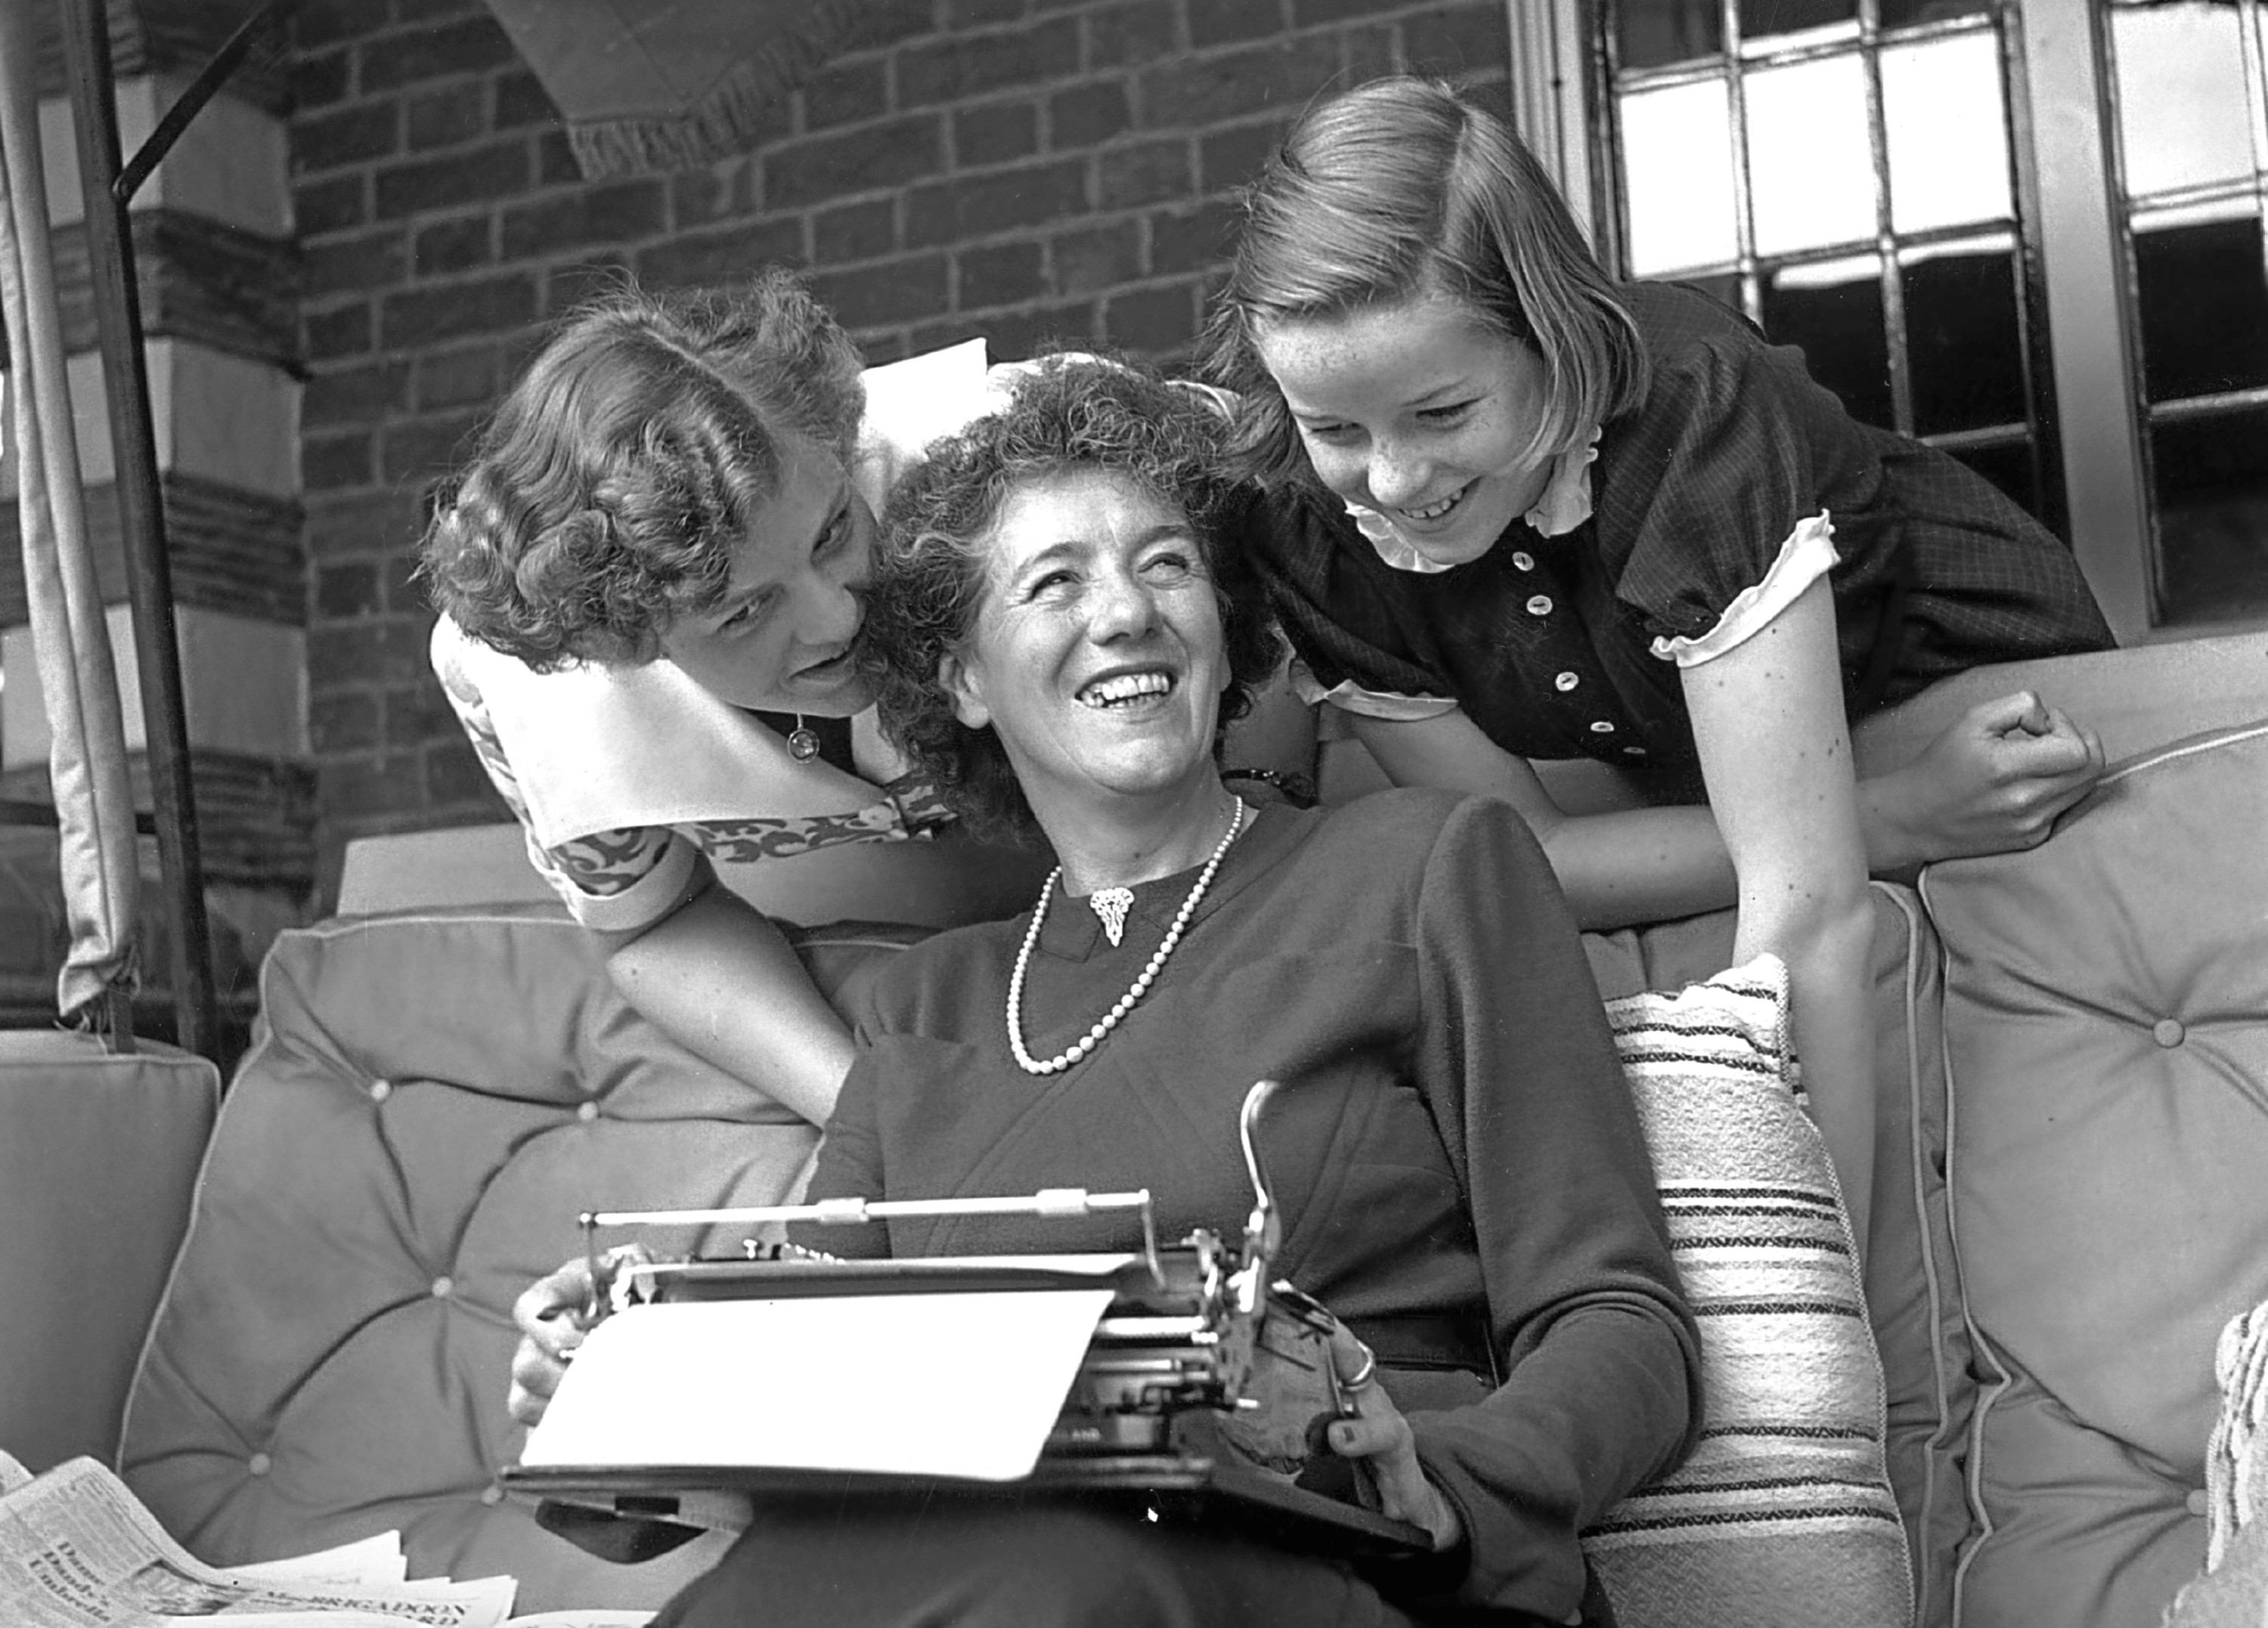 Enid Blyton with her two daughters Gillian (left) and Imogen (right) (George Konig/Keystone Features/Getty Images)